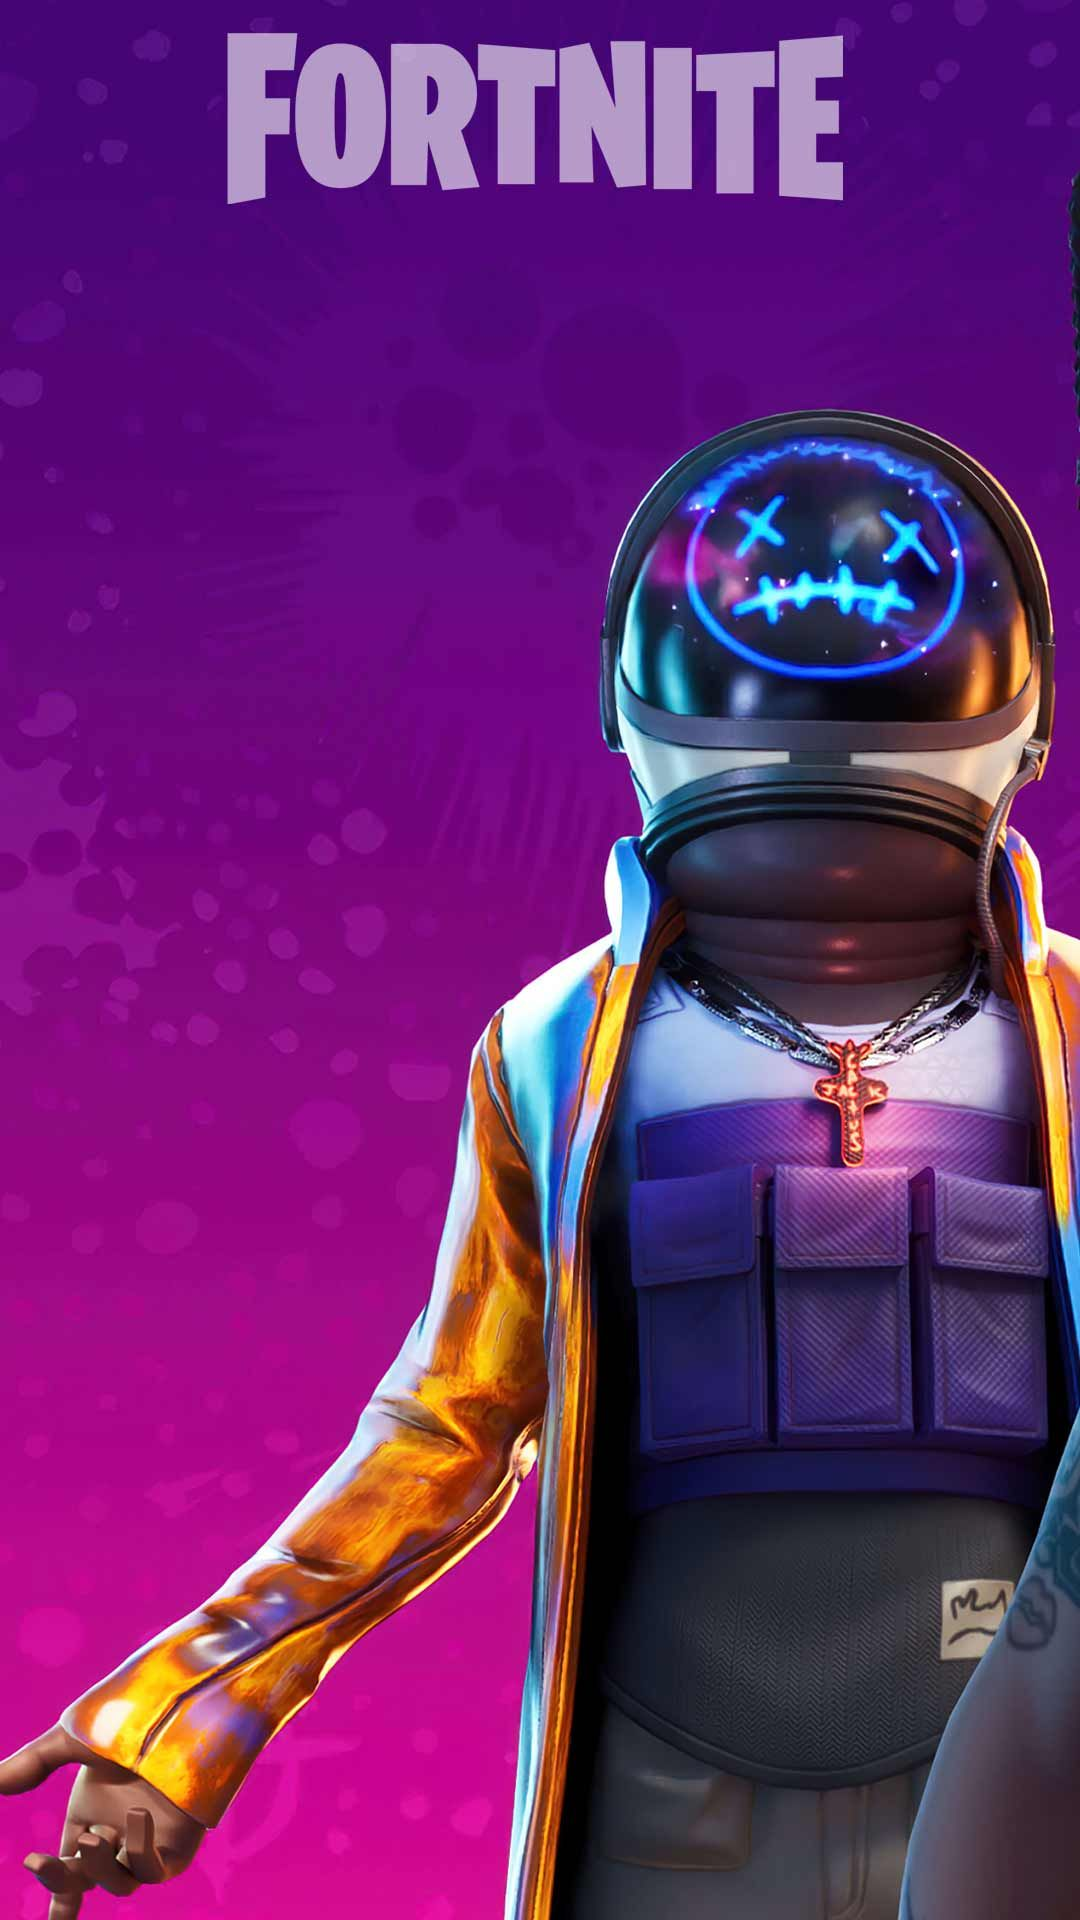 Astro Jack Fortnite Skin Wallpaper Hd Phone Backgrounds Art Poster For Iphone Android Home Screen In 2020 Hd Phone Backgrounds Phone Backgrounds Wallpaper